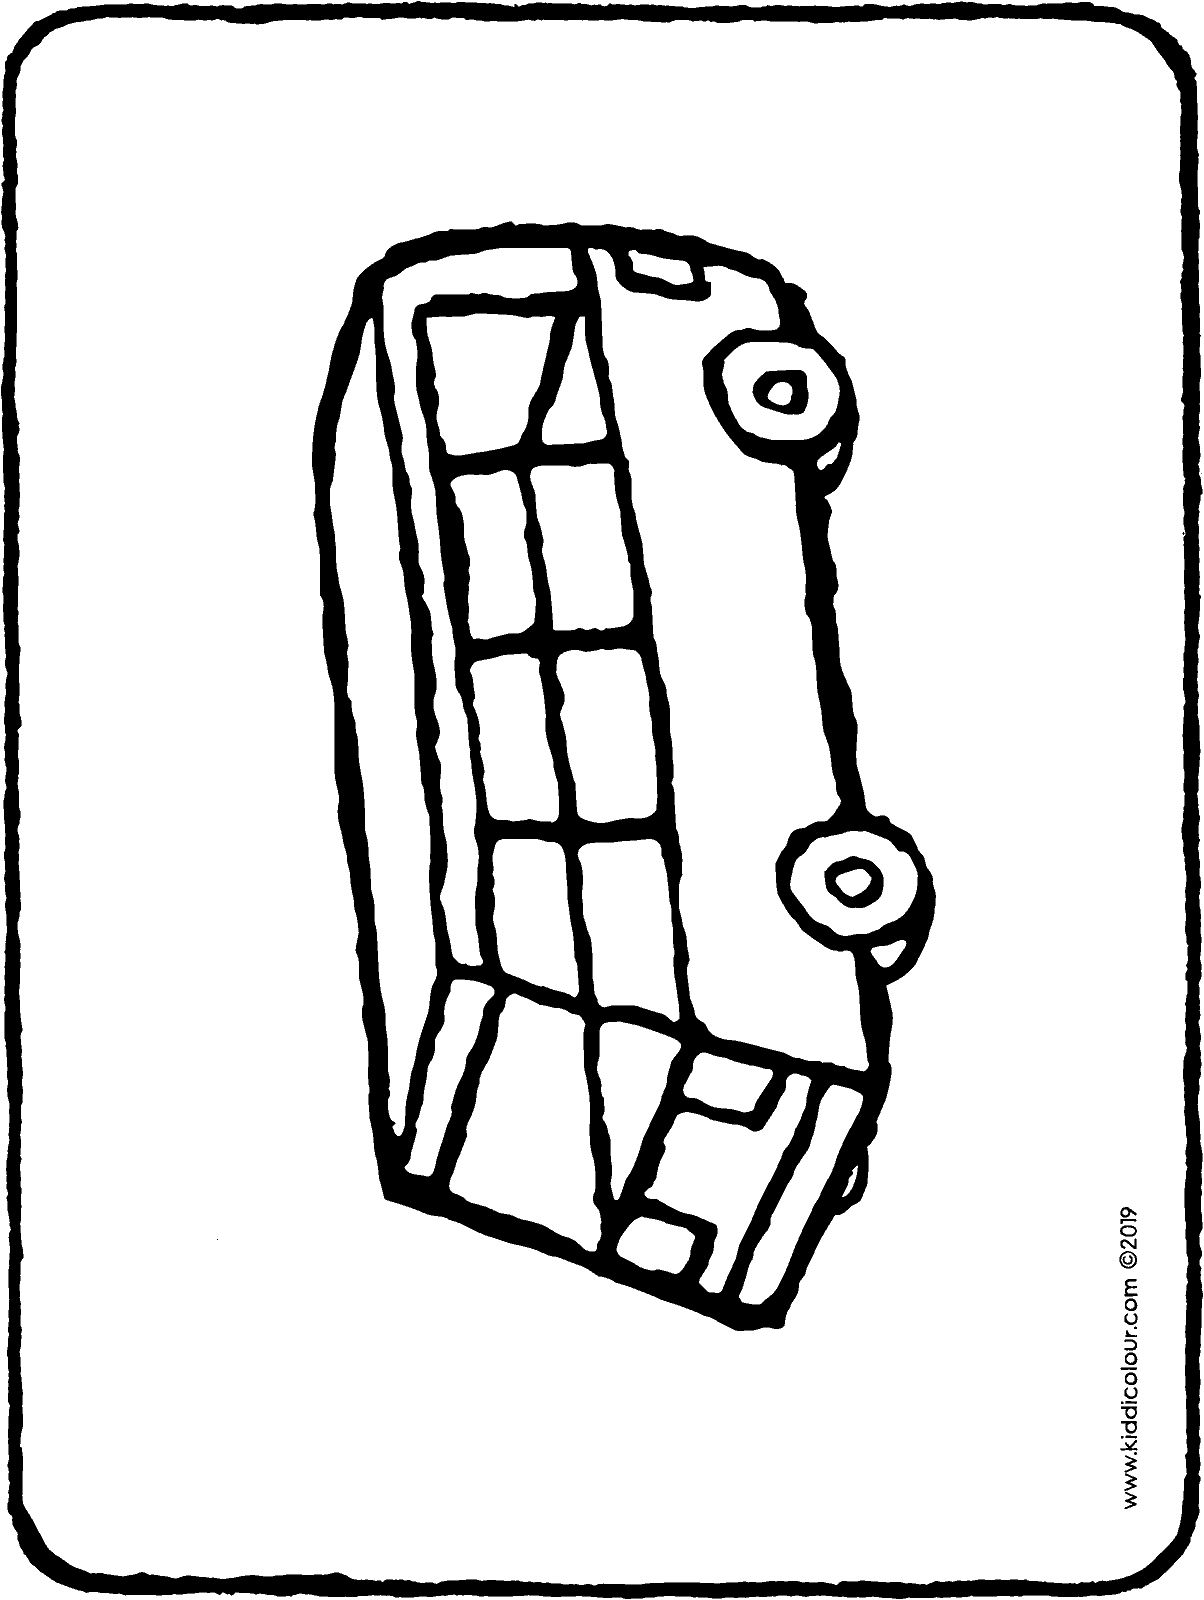 toy bus colouring page drawing picture 01H